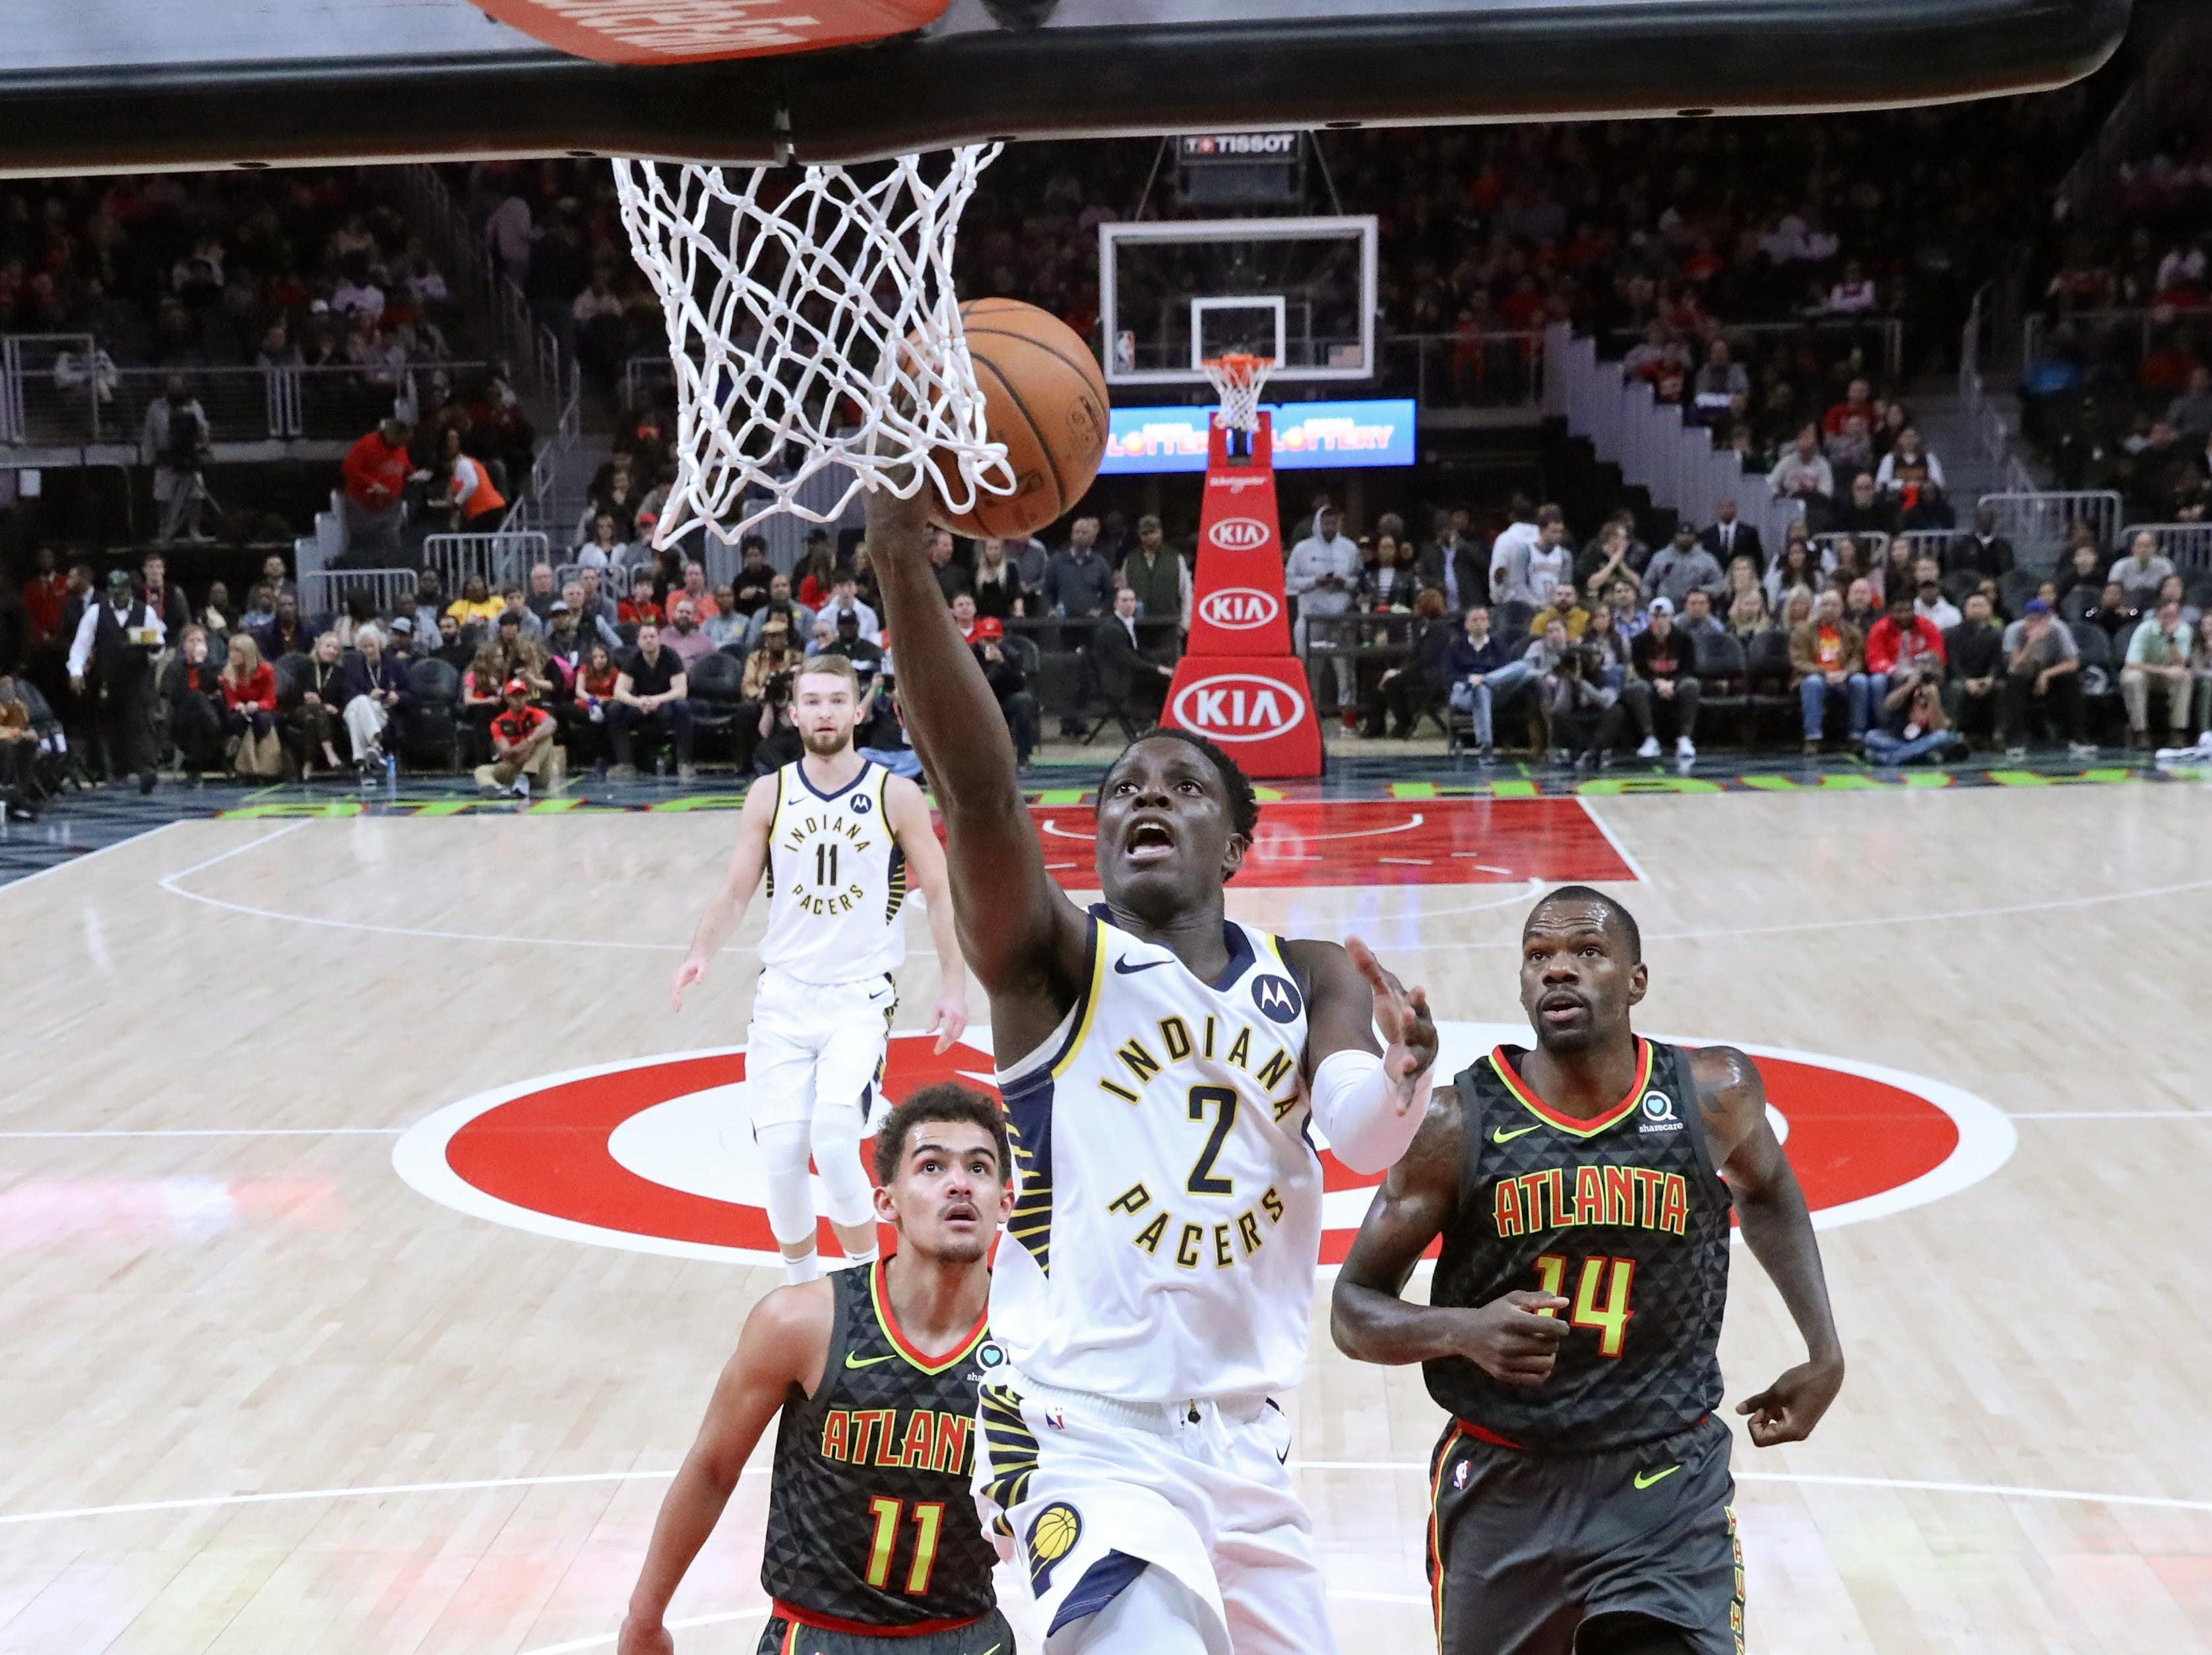 Dec 26, 2018; Atlanta, GA, USA; Indiana Pacers guard Darren Collison (2) attempts a layup against Atlanta Hawks guard Trae Young (11) and center Dewayne Dedmon (14) in the first quarter at State Farm Arena. Mandatory Credit: Jason Getz-USA TODAY Sports